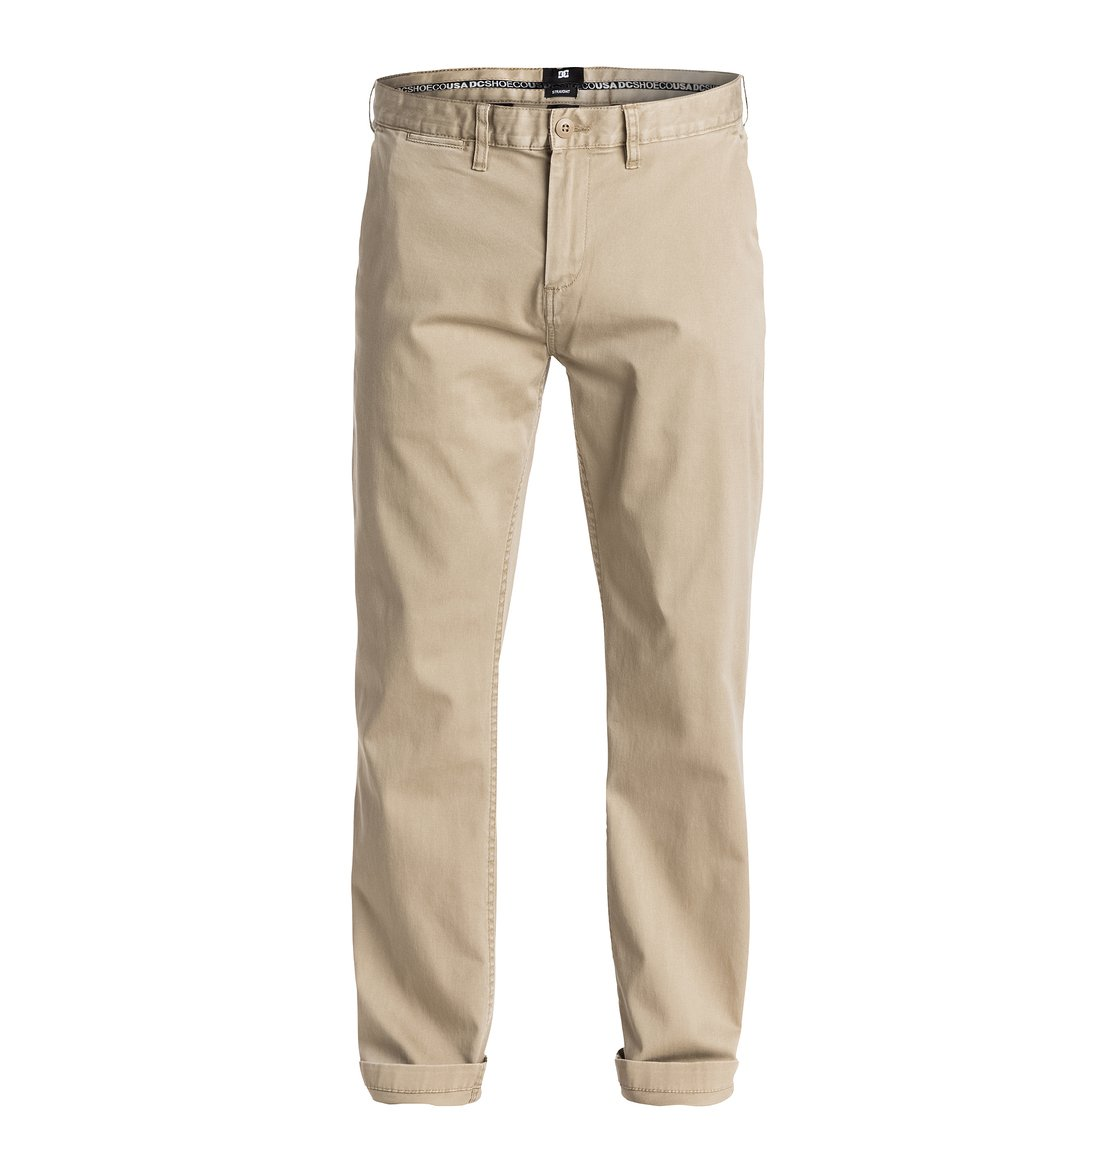 Worker Straight Fit Chino 32 - Dcshoes������� ����� Worker Straight Fit Chino 32 �� DC Shoes. <br>��������������: ������ ���������� �����, ������ ����, ��������� �������� �������, ������� �� ������, ����� � ��������� DC ��� ������ ��������, ��������� ������ ��� ������ �������, ������������ ������� ������� �����. <br>������: 98% ������, 2% �������.<br>